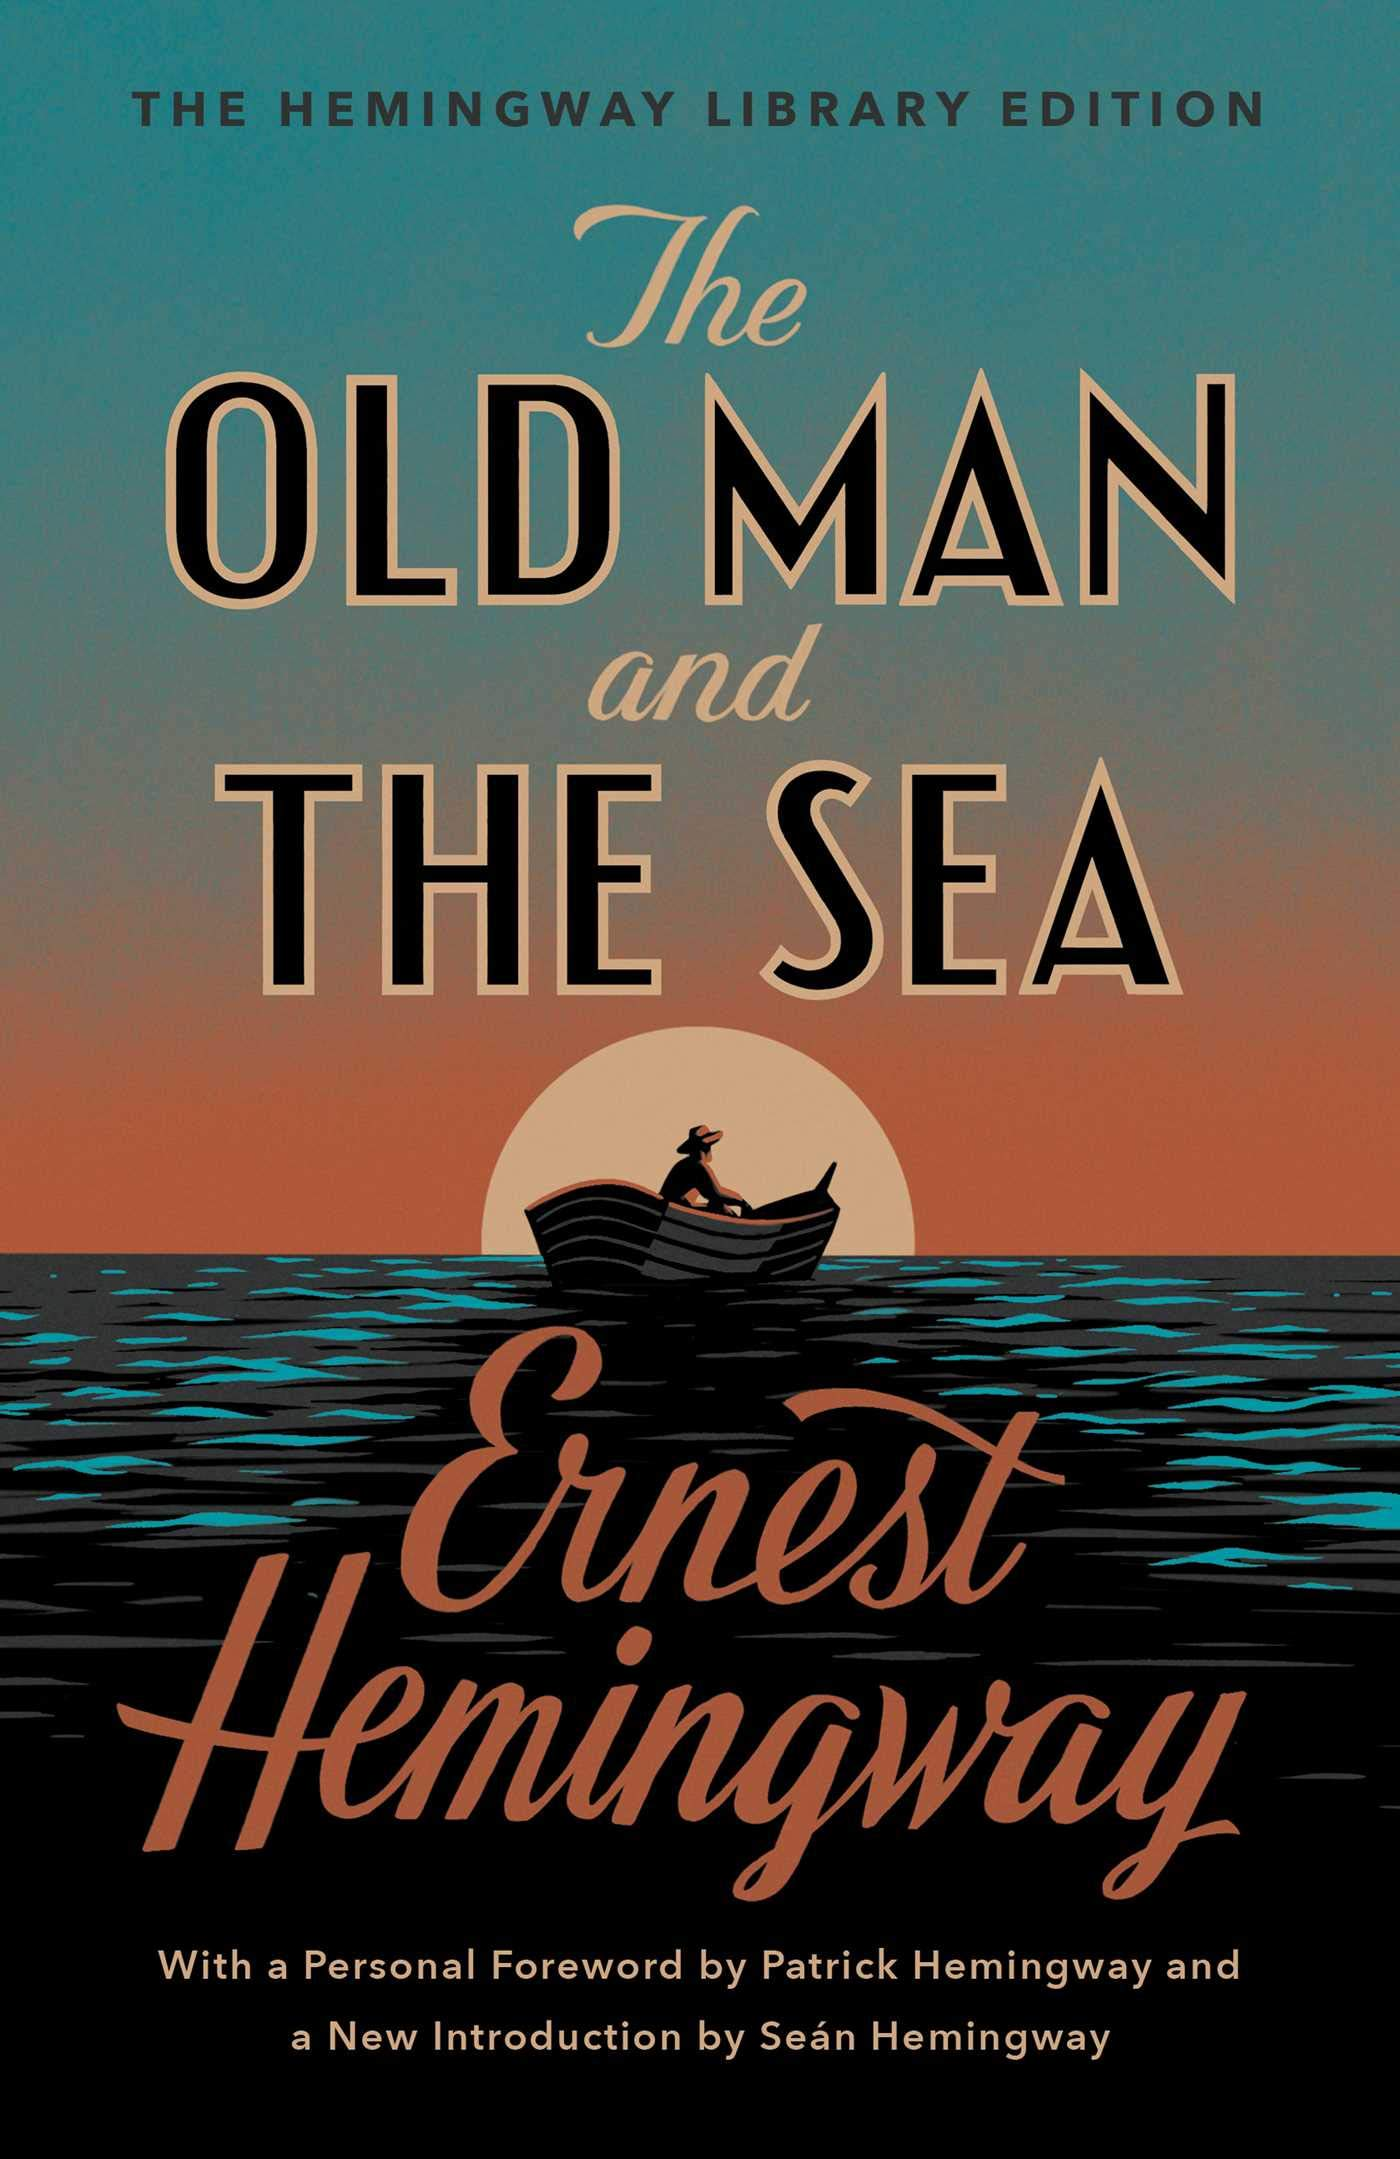 The Old Man and the Sea: The Hemingway Library Edition: Hemingway, Ernest: 9781476787848: Amazon.com: Books